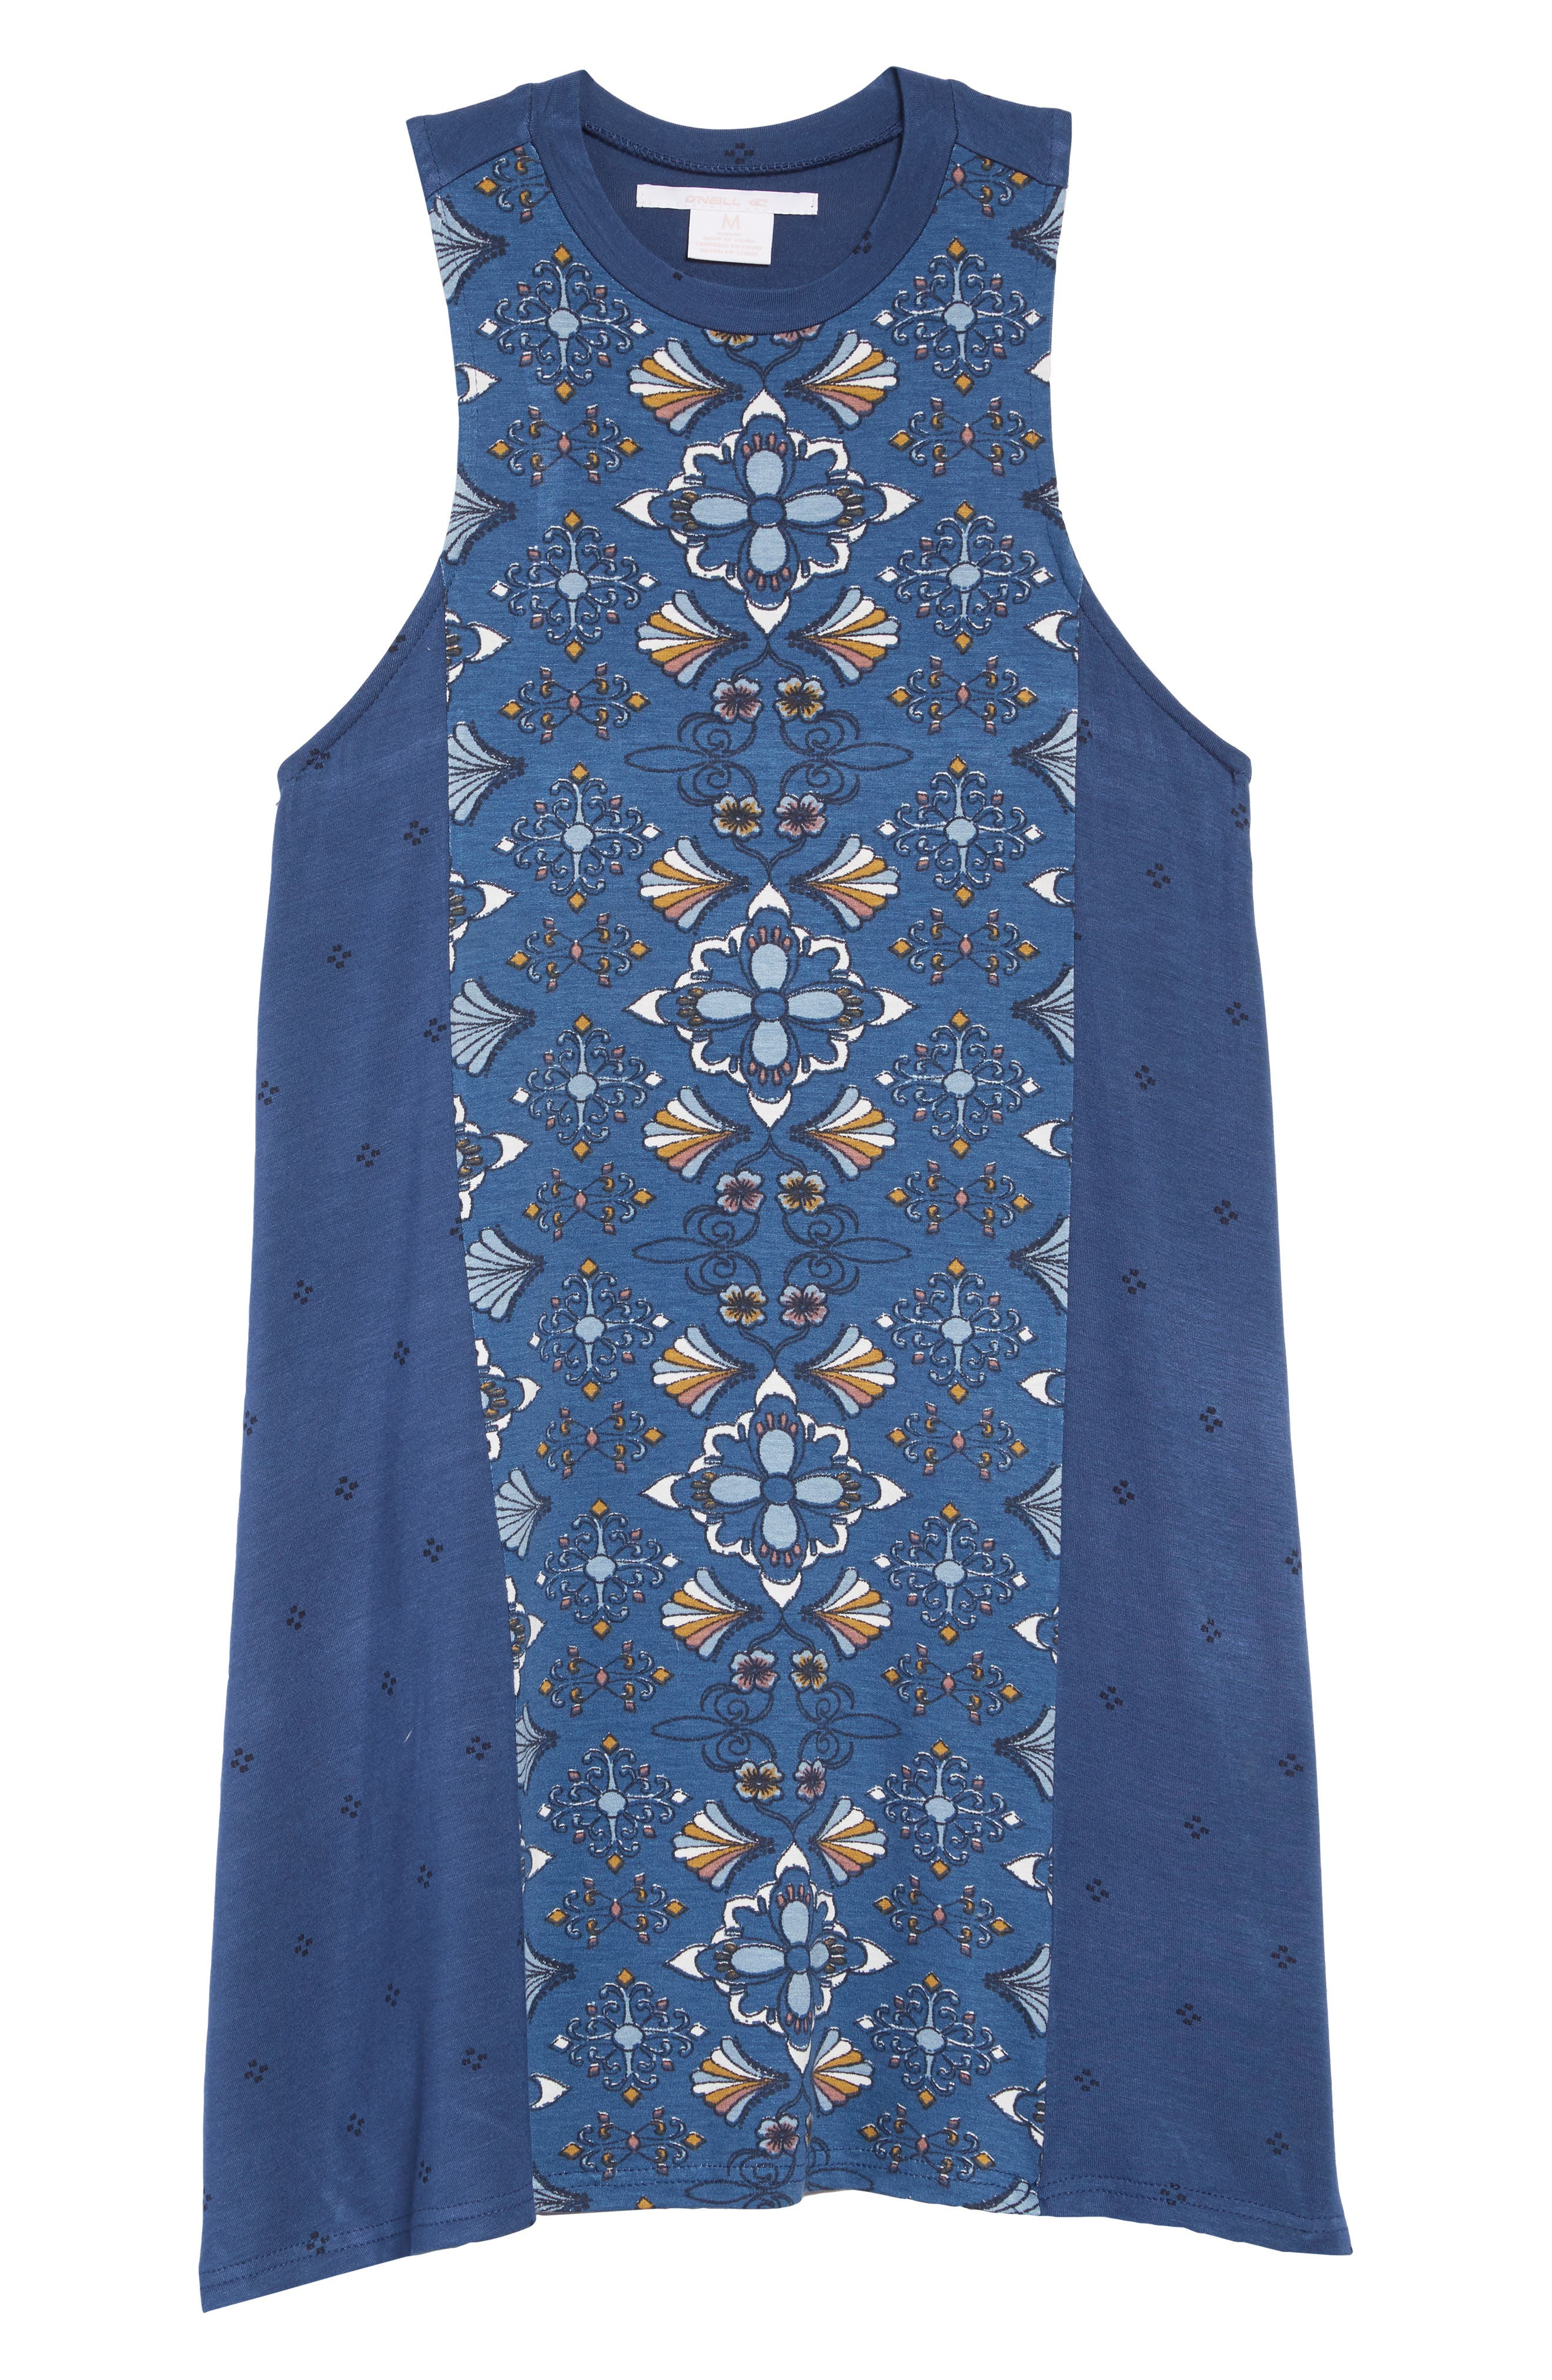 O'NEILL,                             Eslie Tank Dress,                             Main thumbnail 1, color,                             ENSIGN BLUE